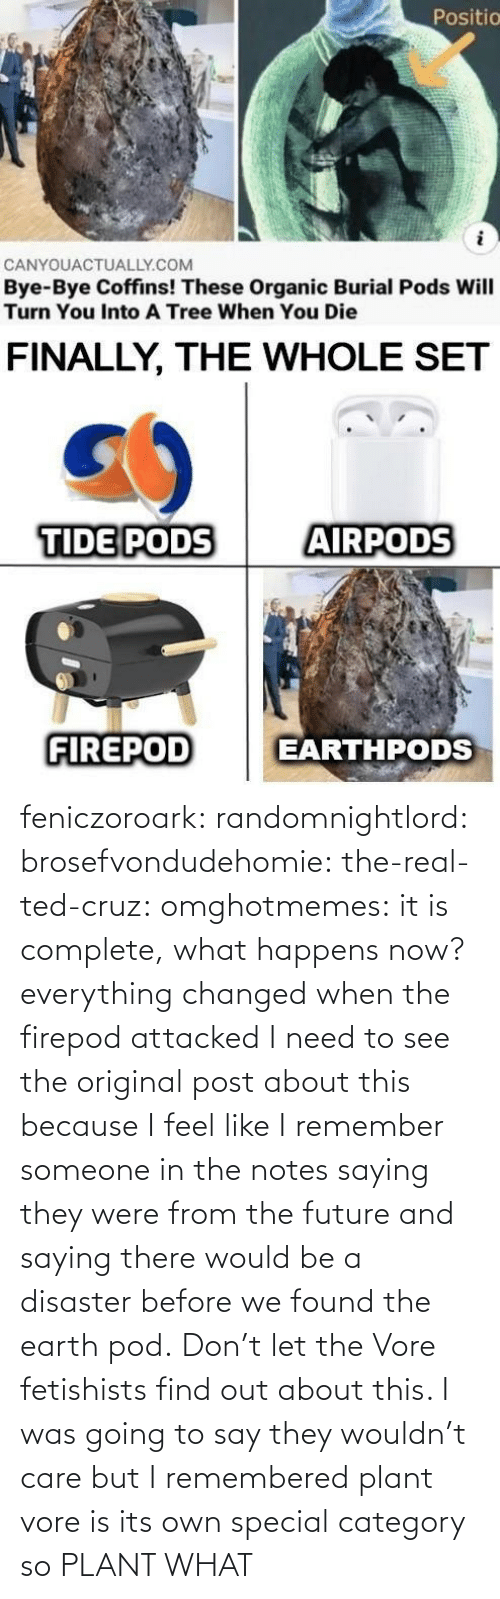 When The: feniczoroark:  randomnightlord:  brosefvondudehomie: the-real-ted-cruz:  omghotmemes: it is complete, what happens now? everything changed when the firepod attacked    I need to see the original post about this because I feel like I remember someone in the notes saying they were from the future and saying there would be a disaster before we found the earth pod.    Don't let the Vore fetishists find out about this.    I was going to say they wouldn't care but I remembered plant vore is its own special category so   PLANT WHAT